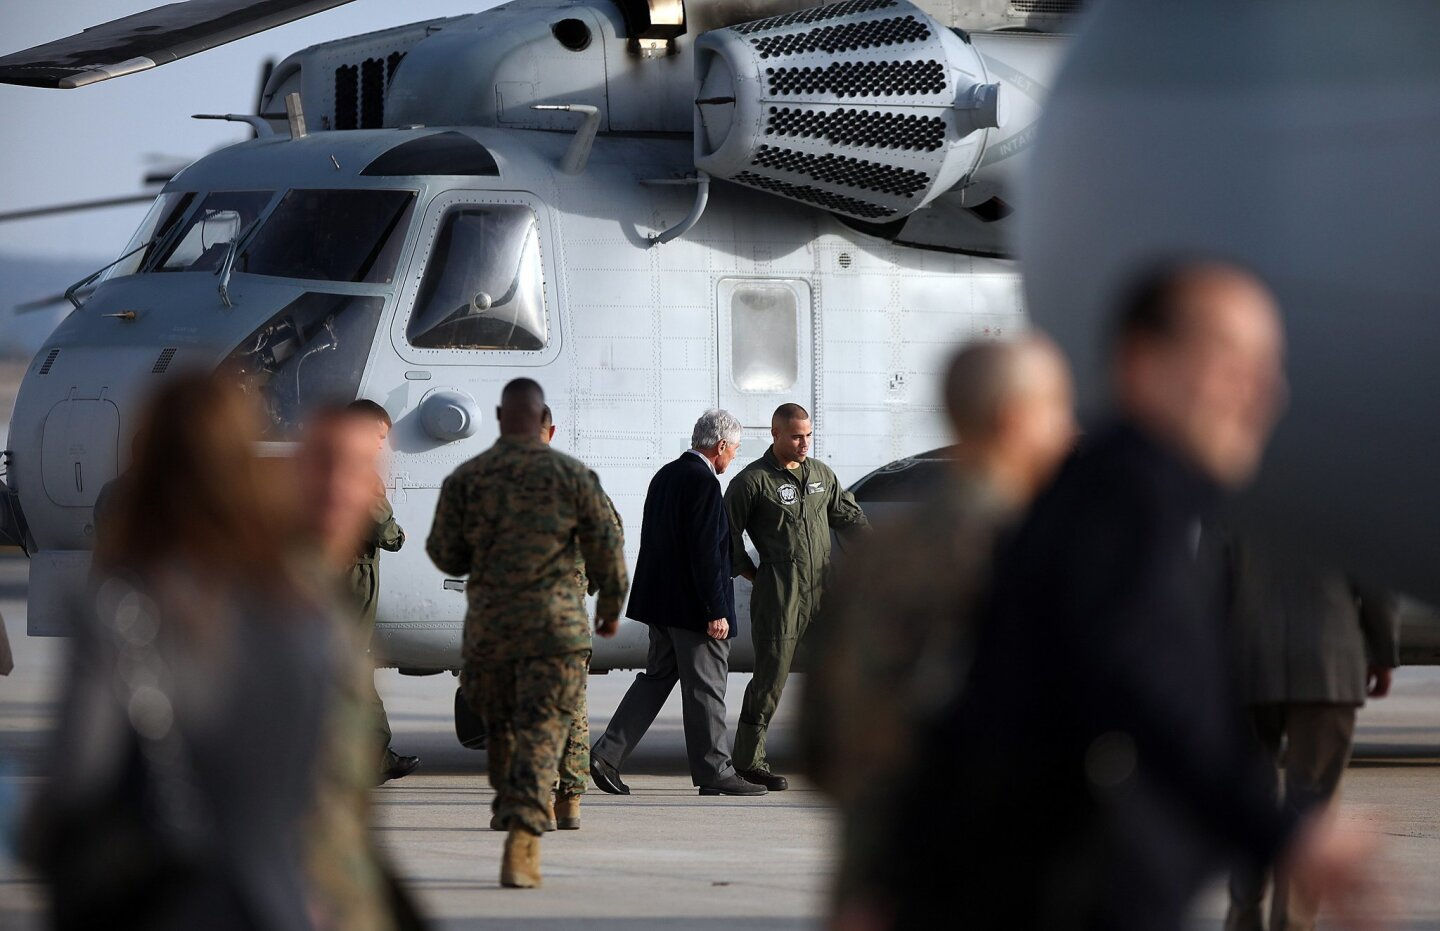 Secretary Hagel was introduced to pilots of various aircraft including this CH-53 Super Stallion.